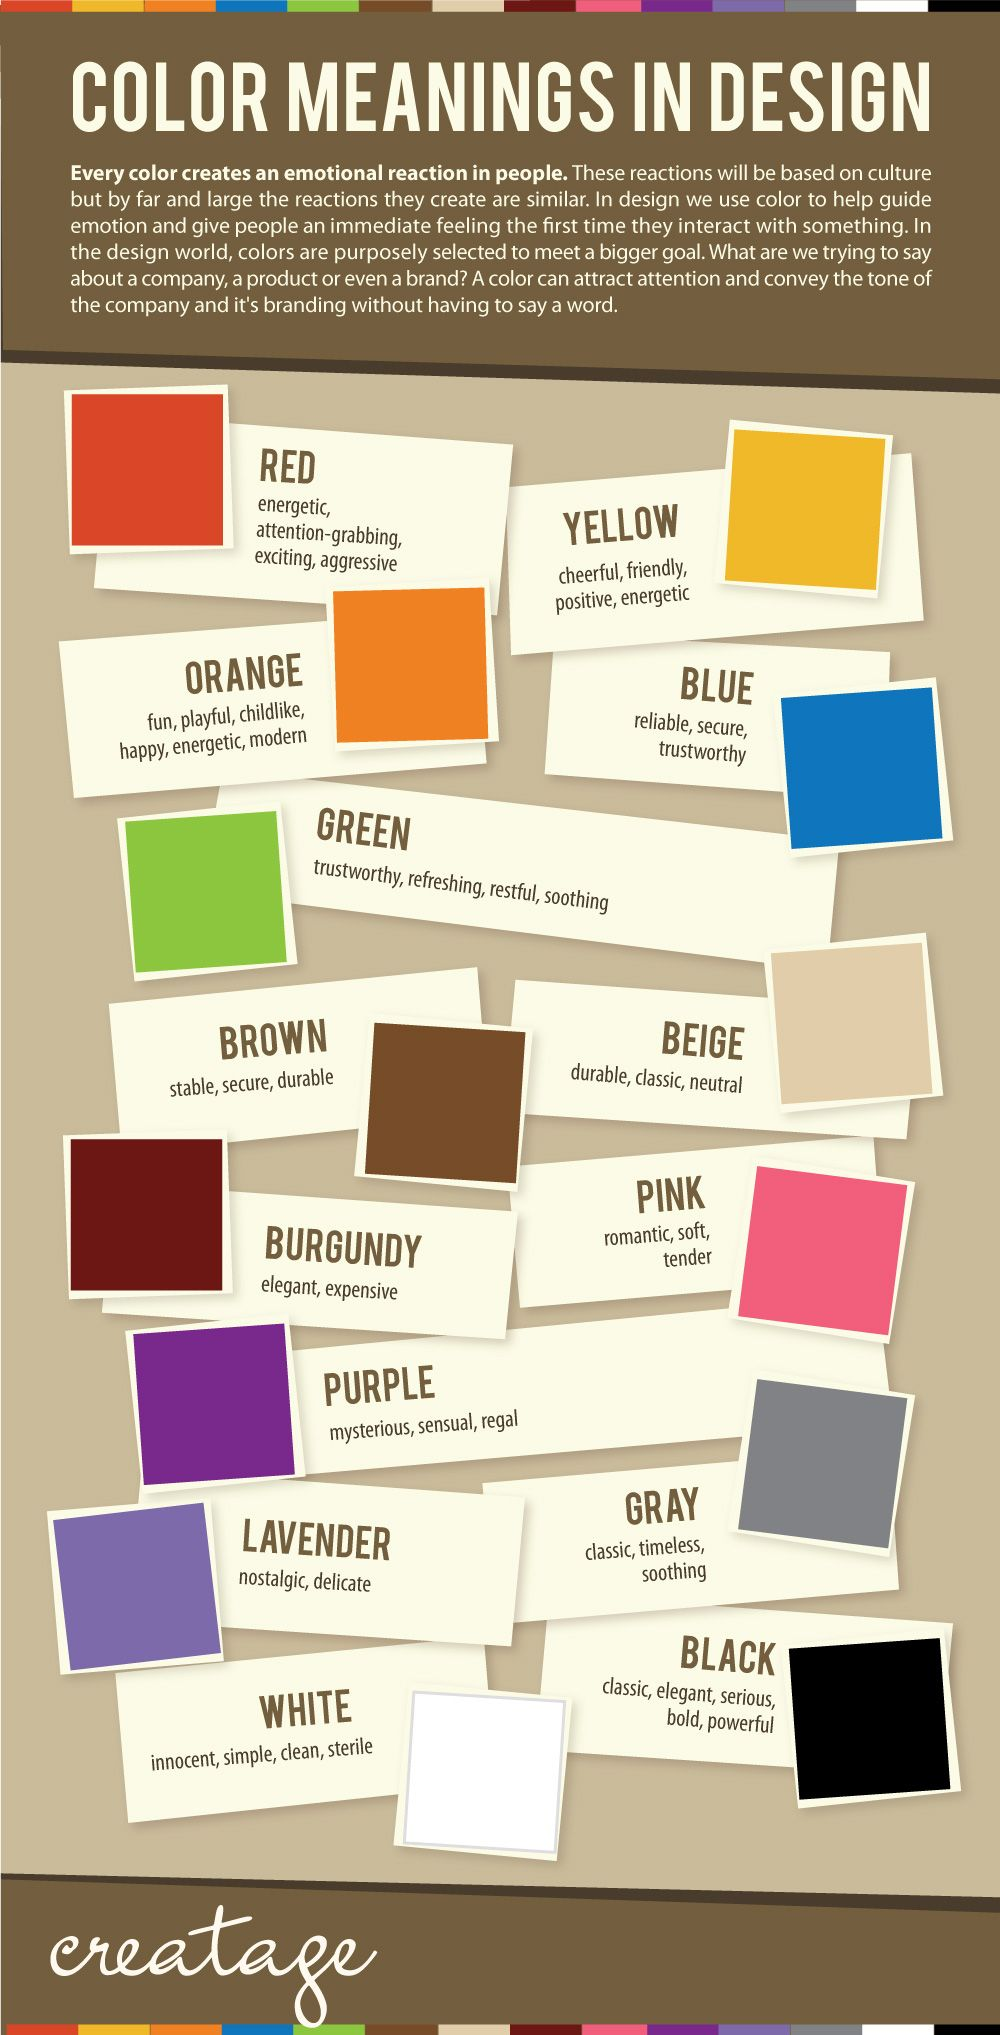 Color meaning in design. How everyday colors create emotional reactions in people.